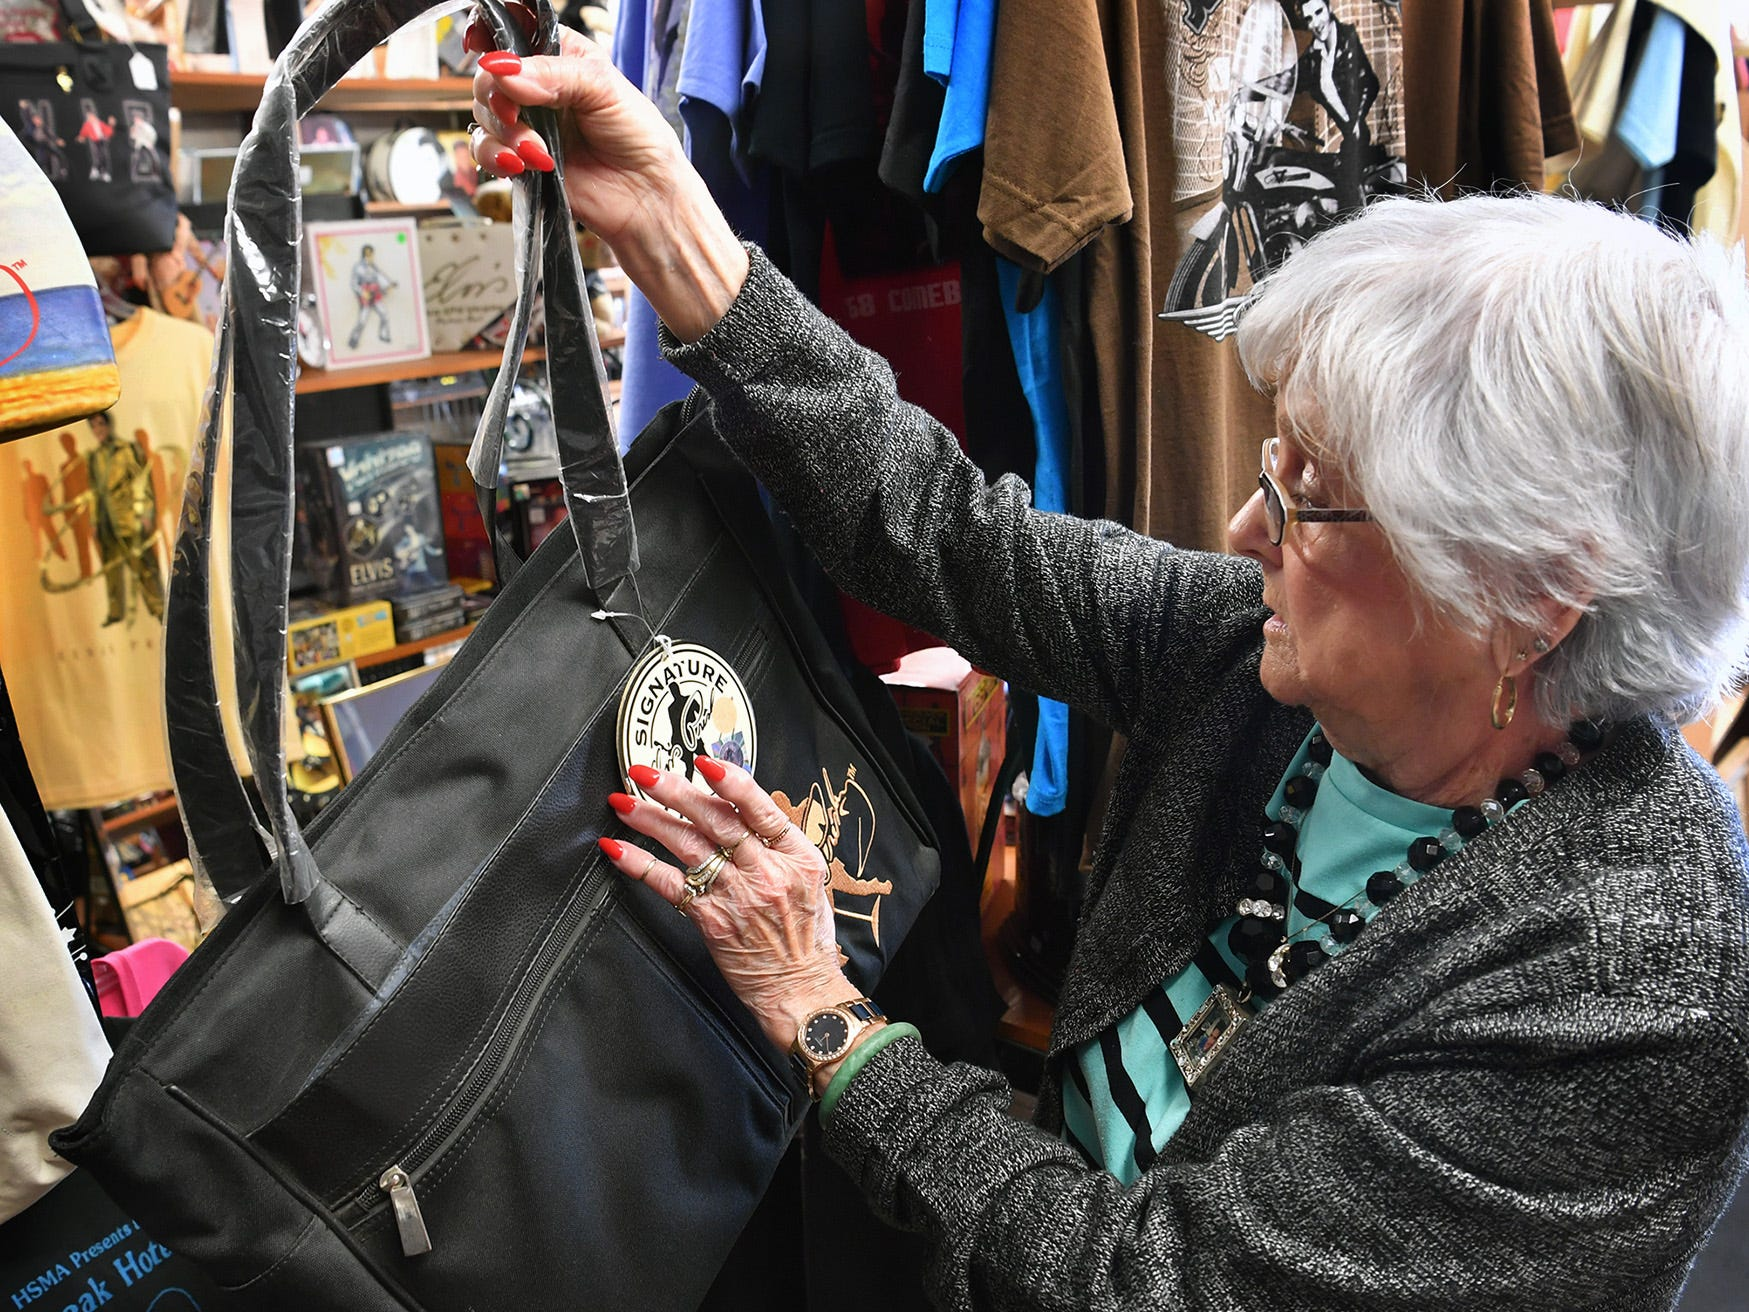 Margaret Waller shows one of the wide variety of products collectors of Elvis memorabilia can find at the the shop she and her husband operate, Elvis Always Gifts and Collectibles.